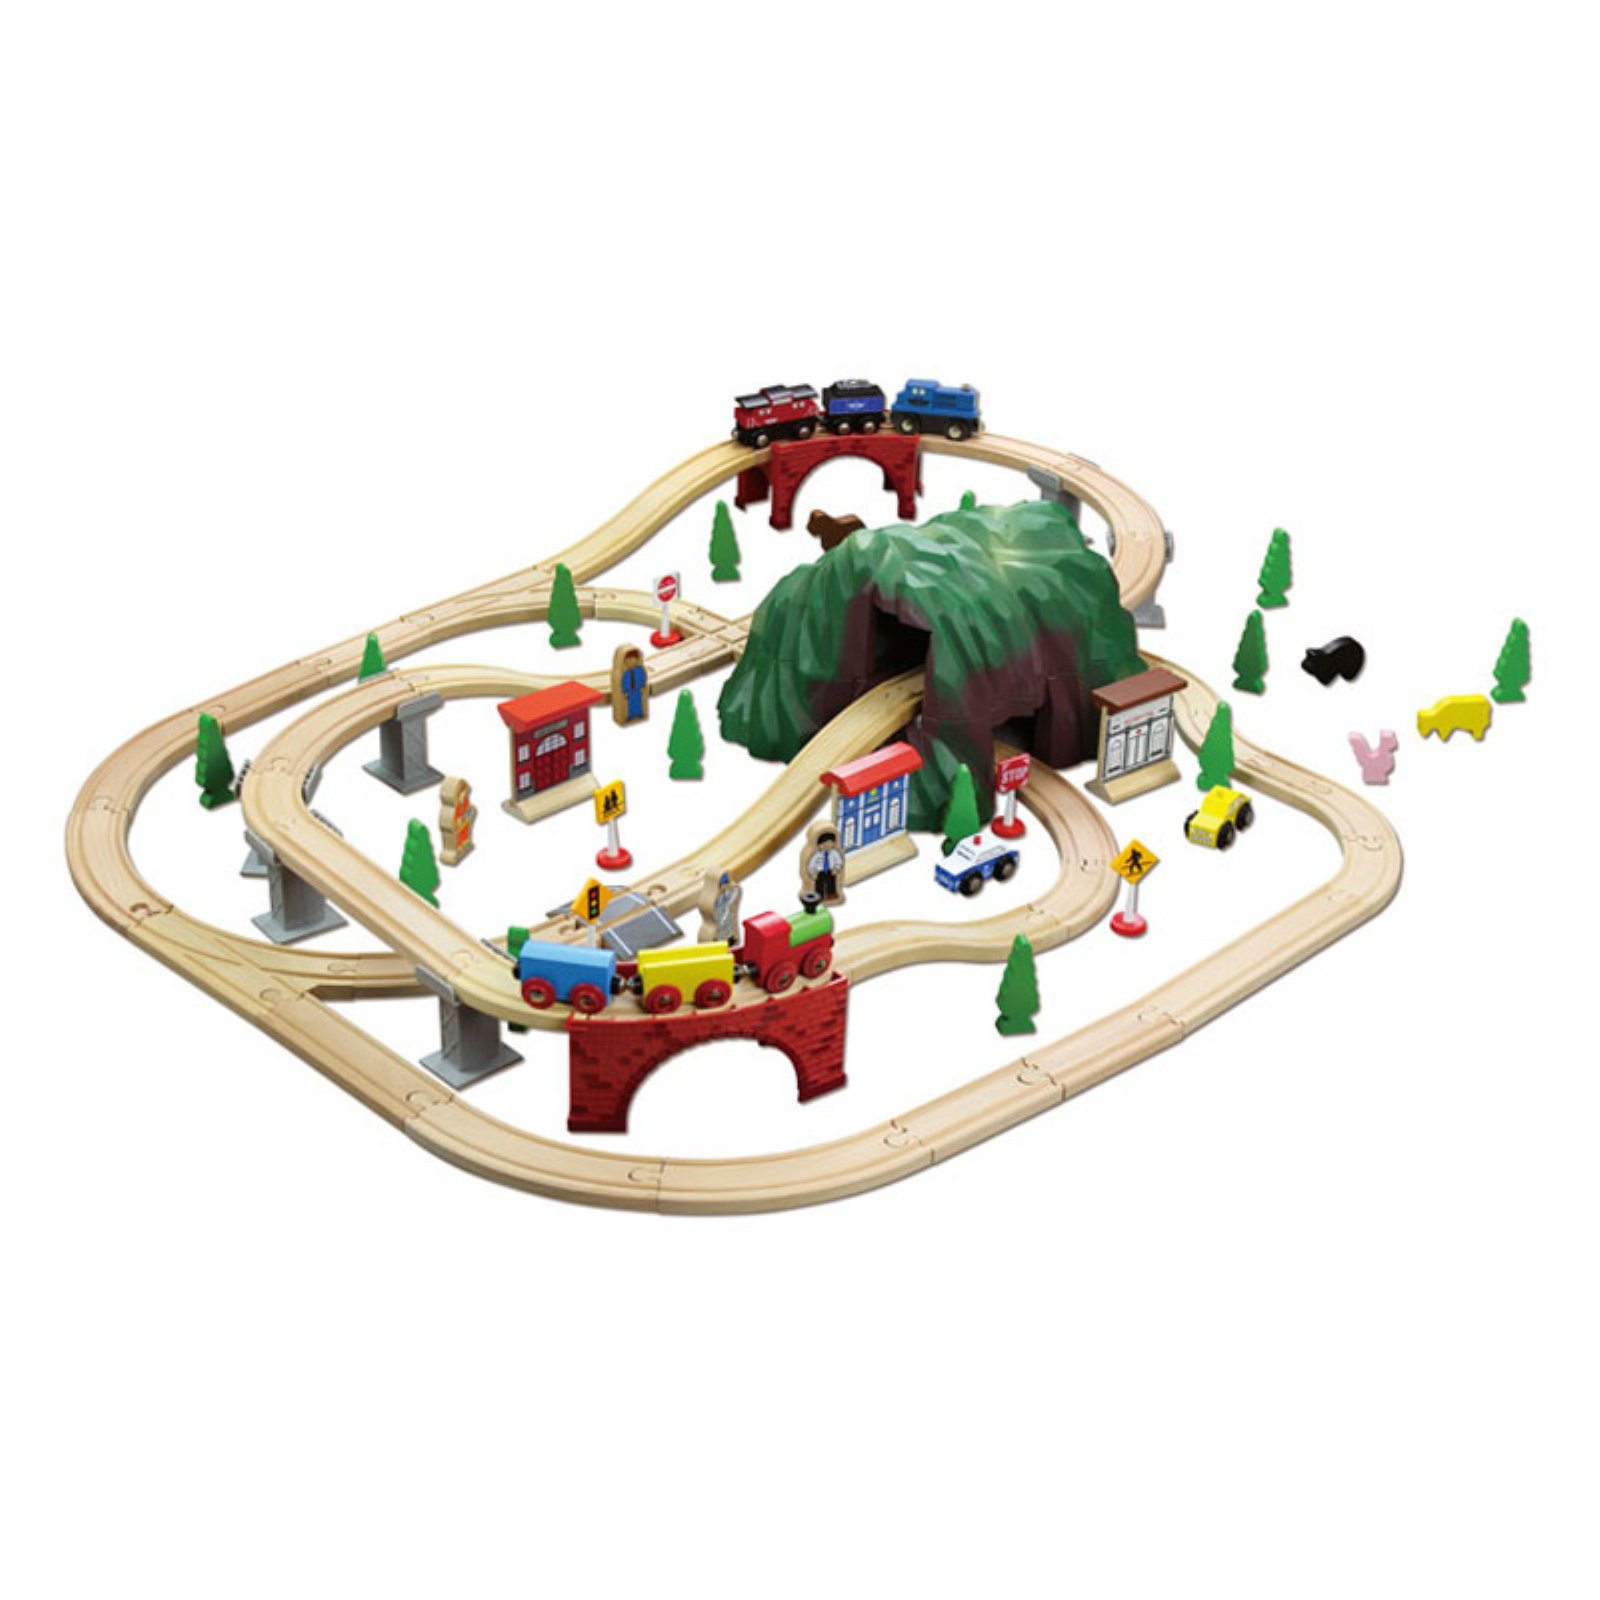 100-Piece Mountain Wooden Train Set by Maxim Enterprise Inc.